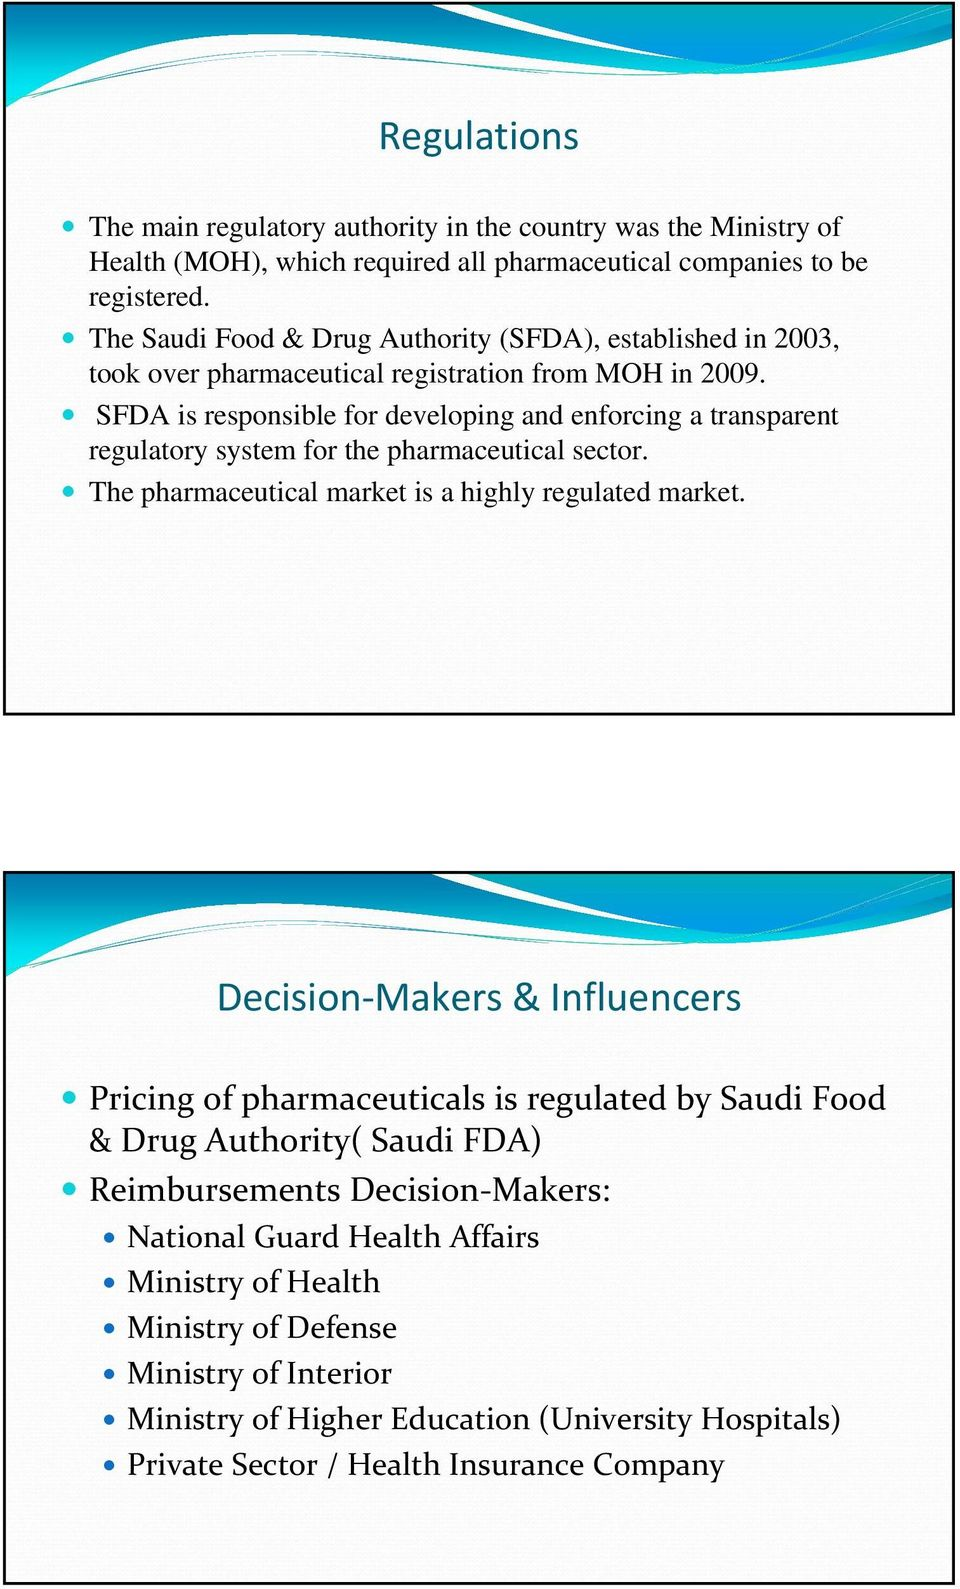 SFDA is responsible for developing and enforcing a transparent regulatory system for the pharmaceutical sector. The pharmaceutical market is a highly regulated market.